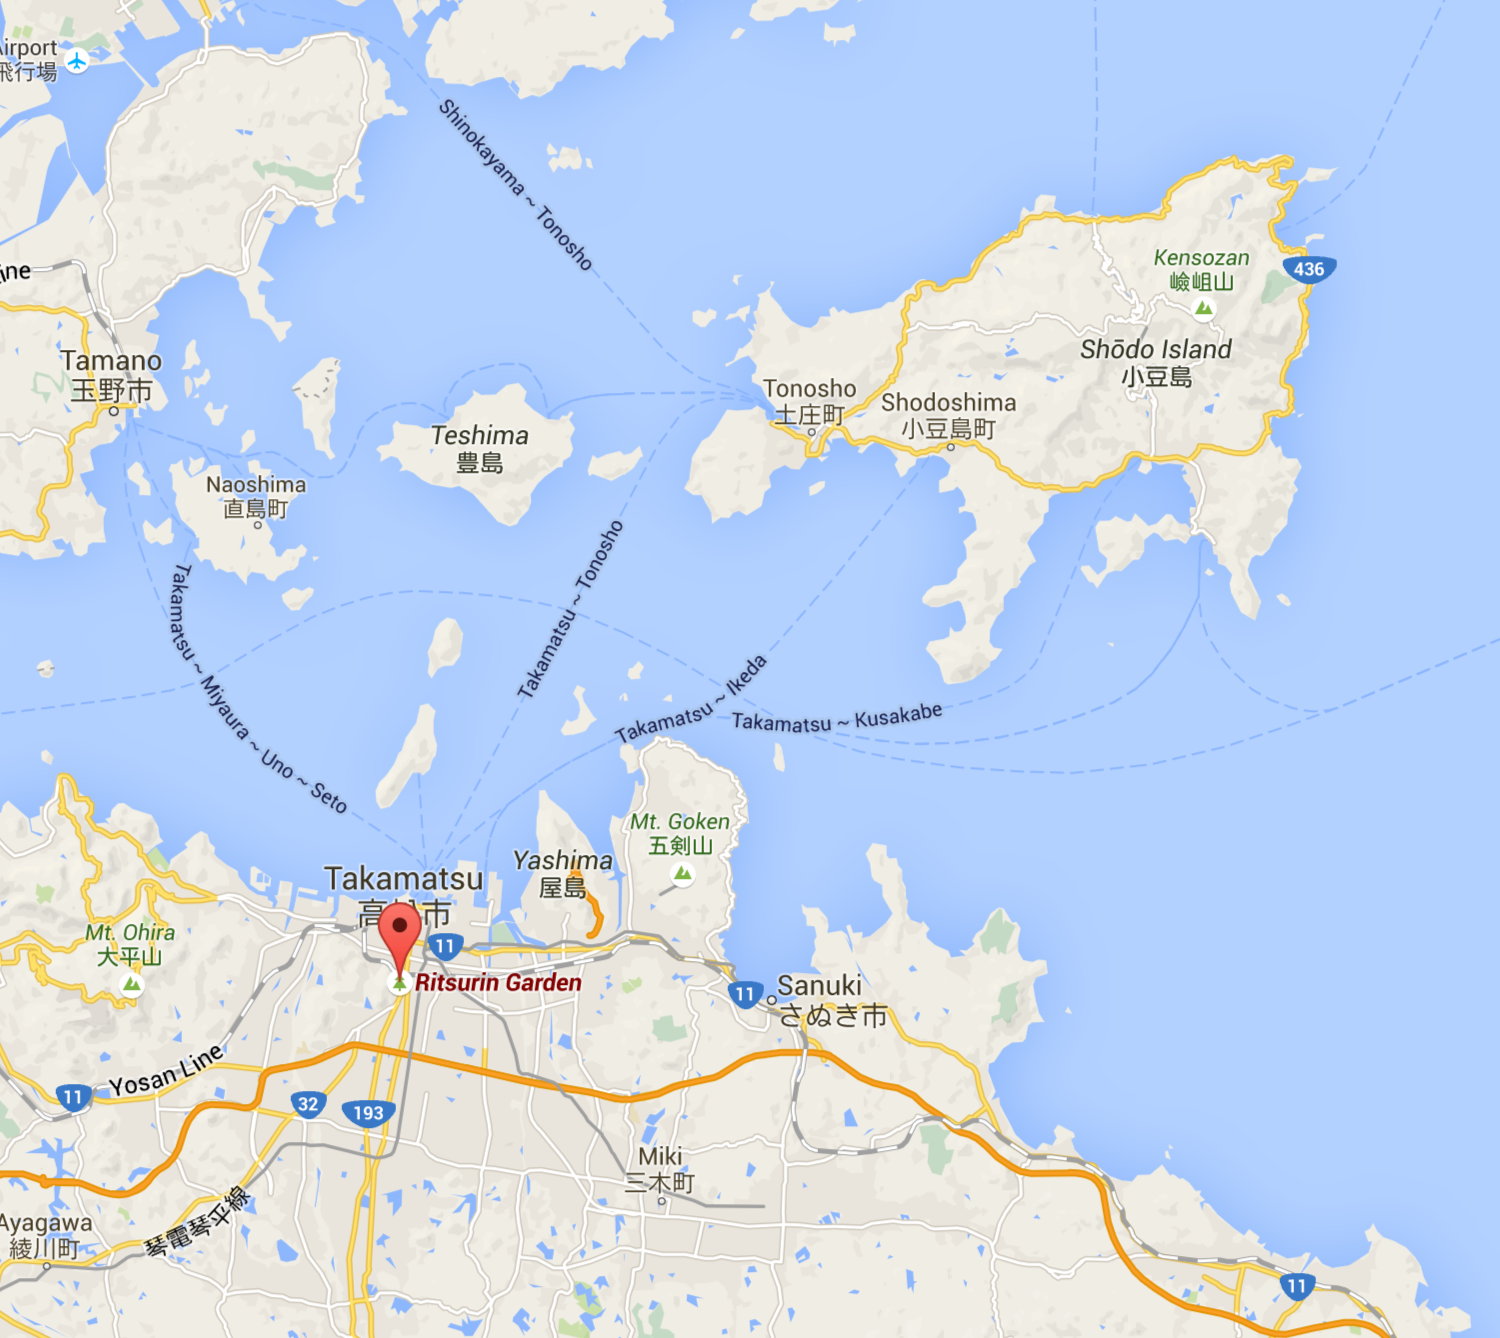 Takamatsu in relation to Shodoshima- an hour on the ferry from Tonosho port